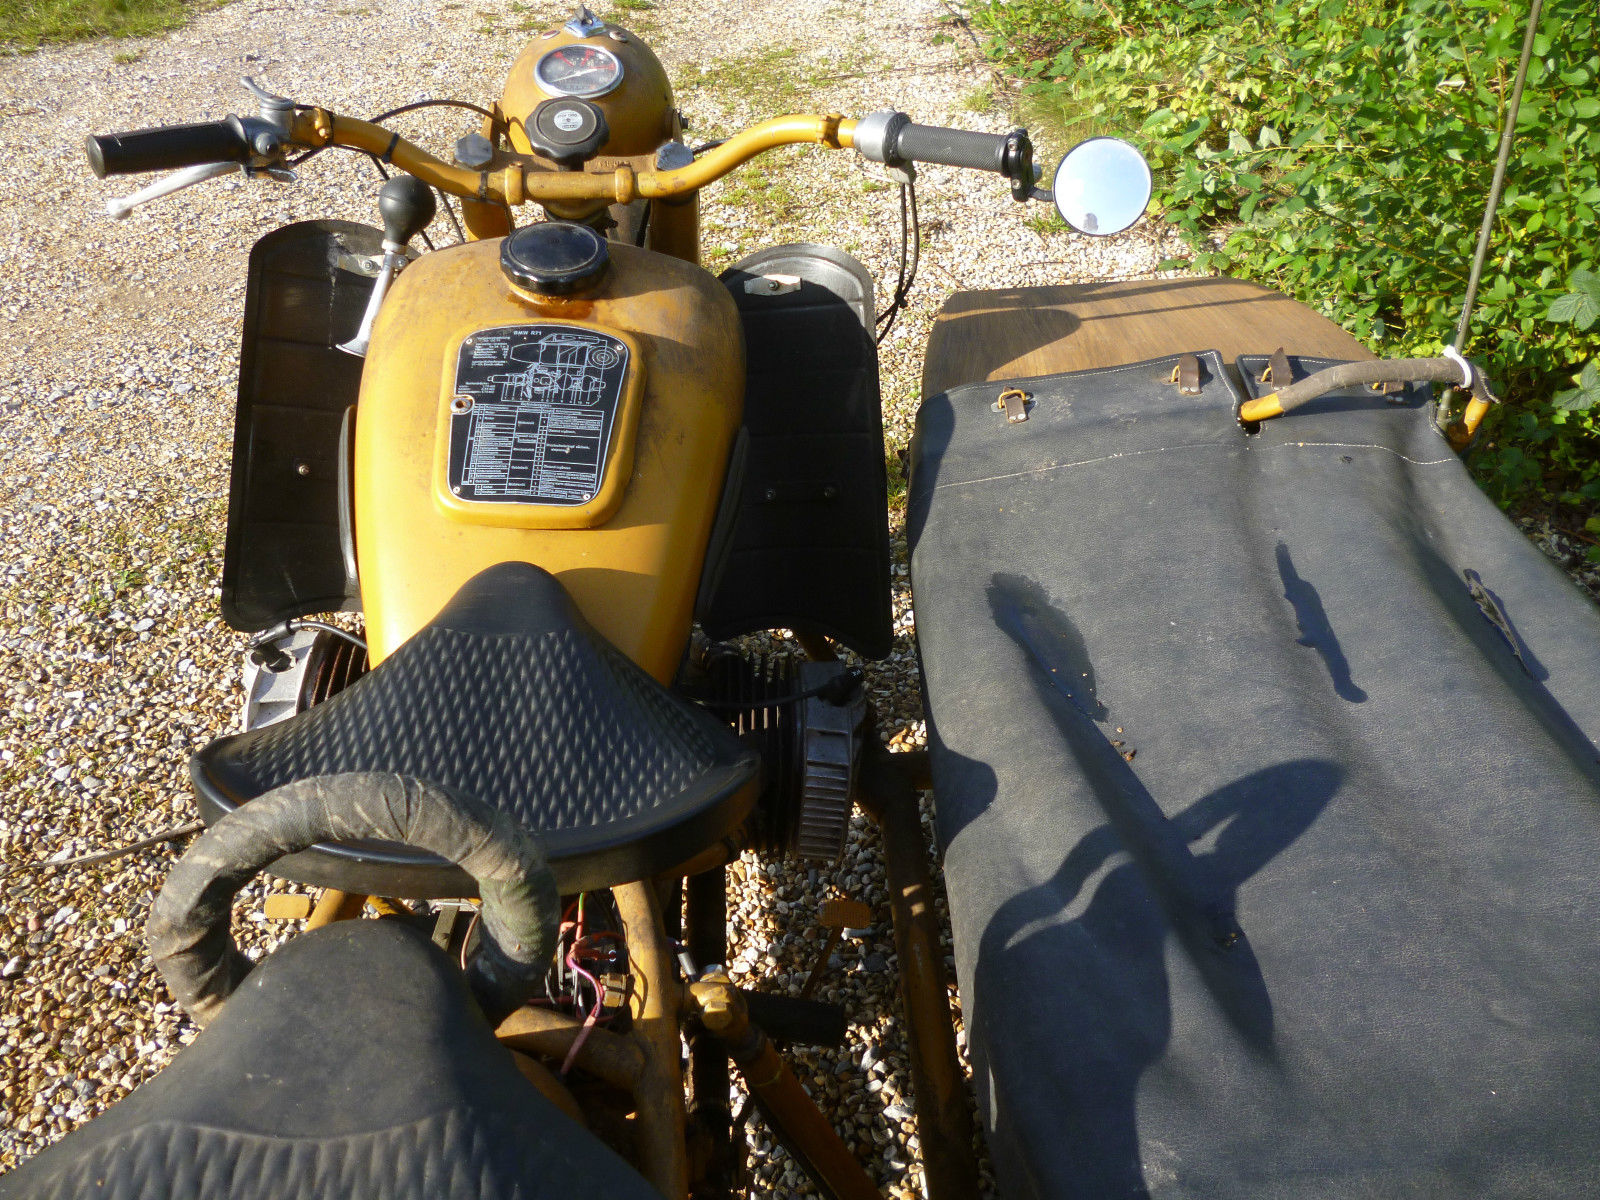 hight resolution of ural k750 sidecar outfit 1962 tax exempt new mot not cossack bmw dnepr